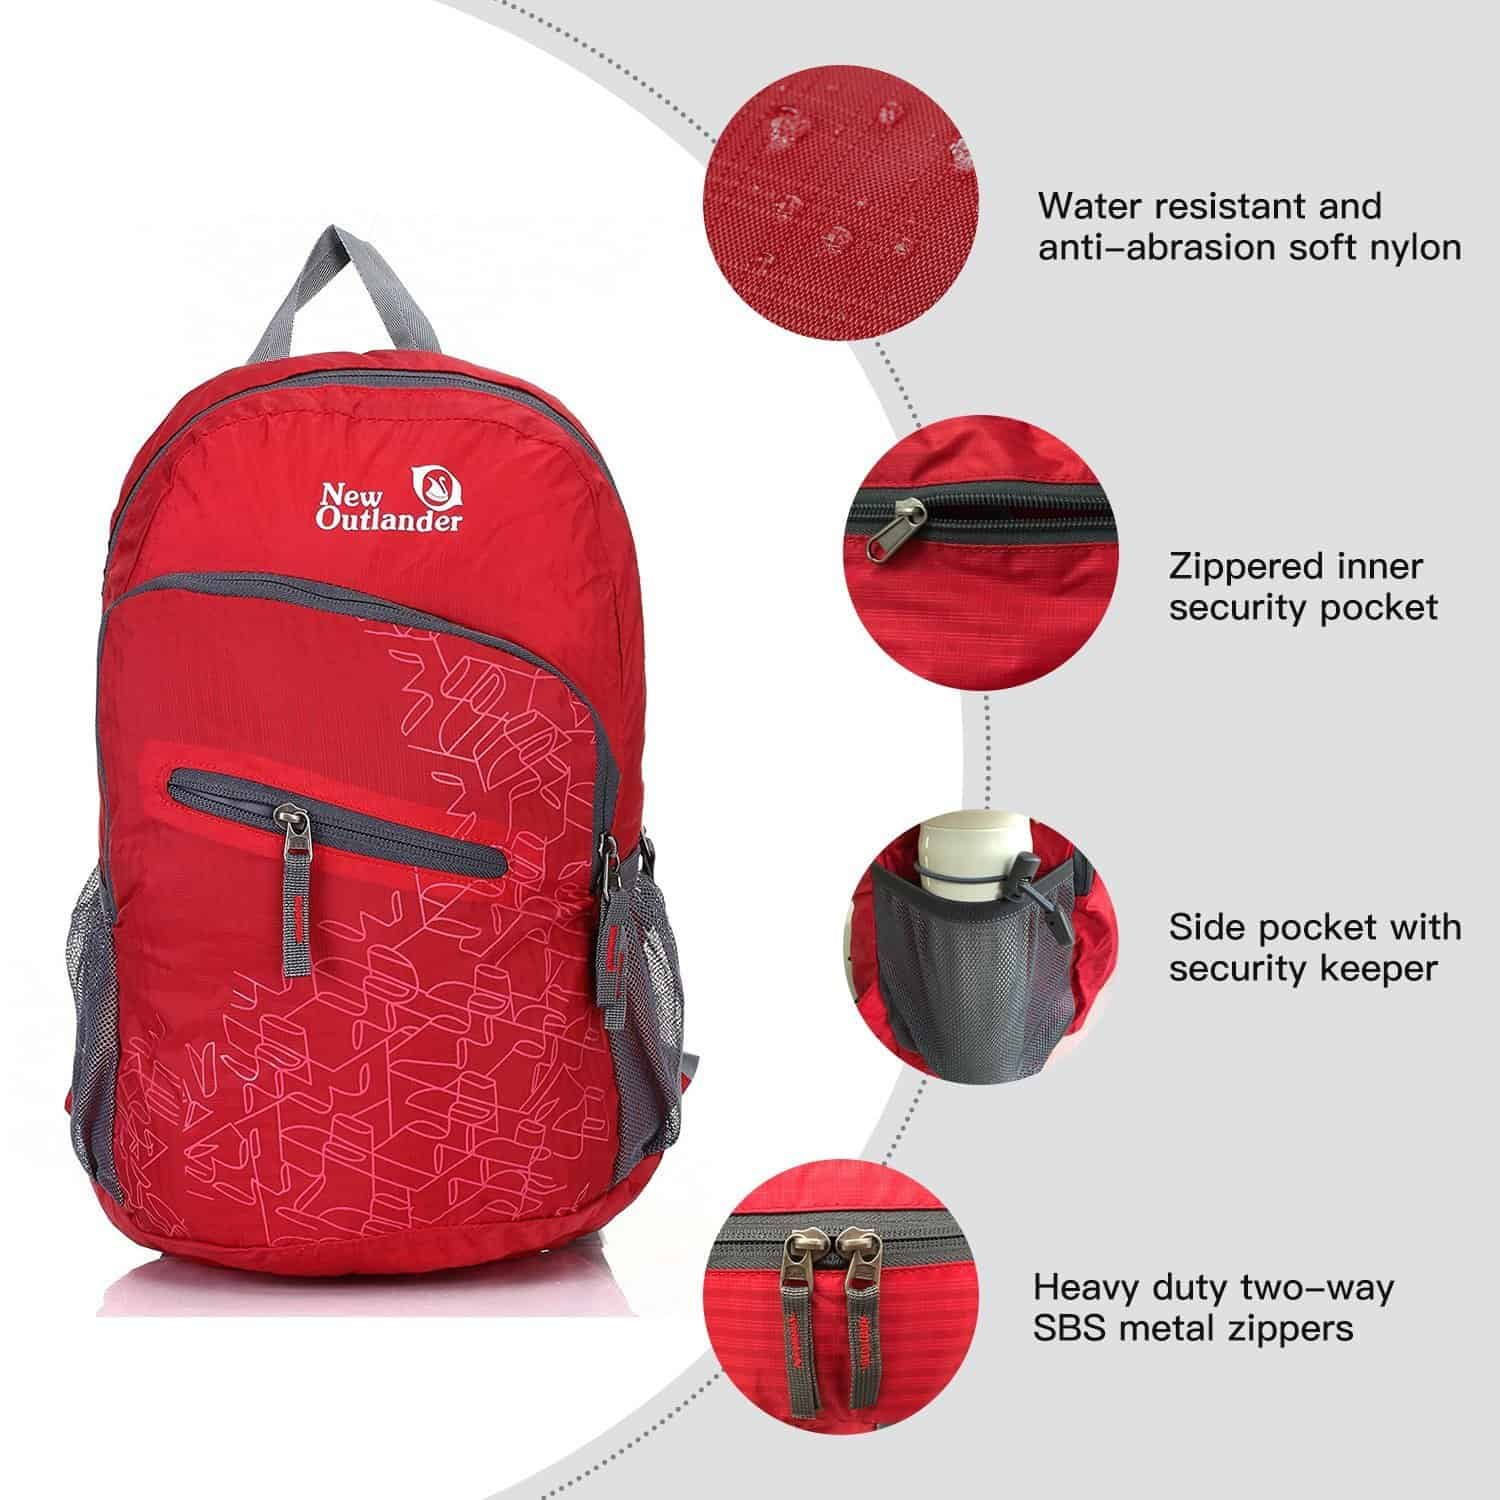 New Outlander BackPack features Red